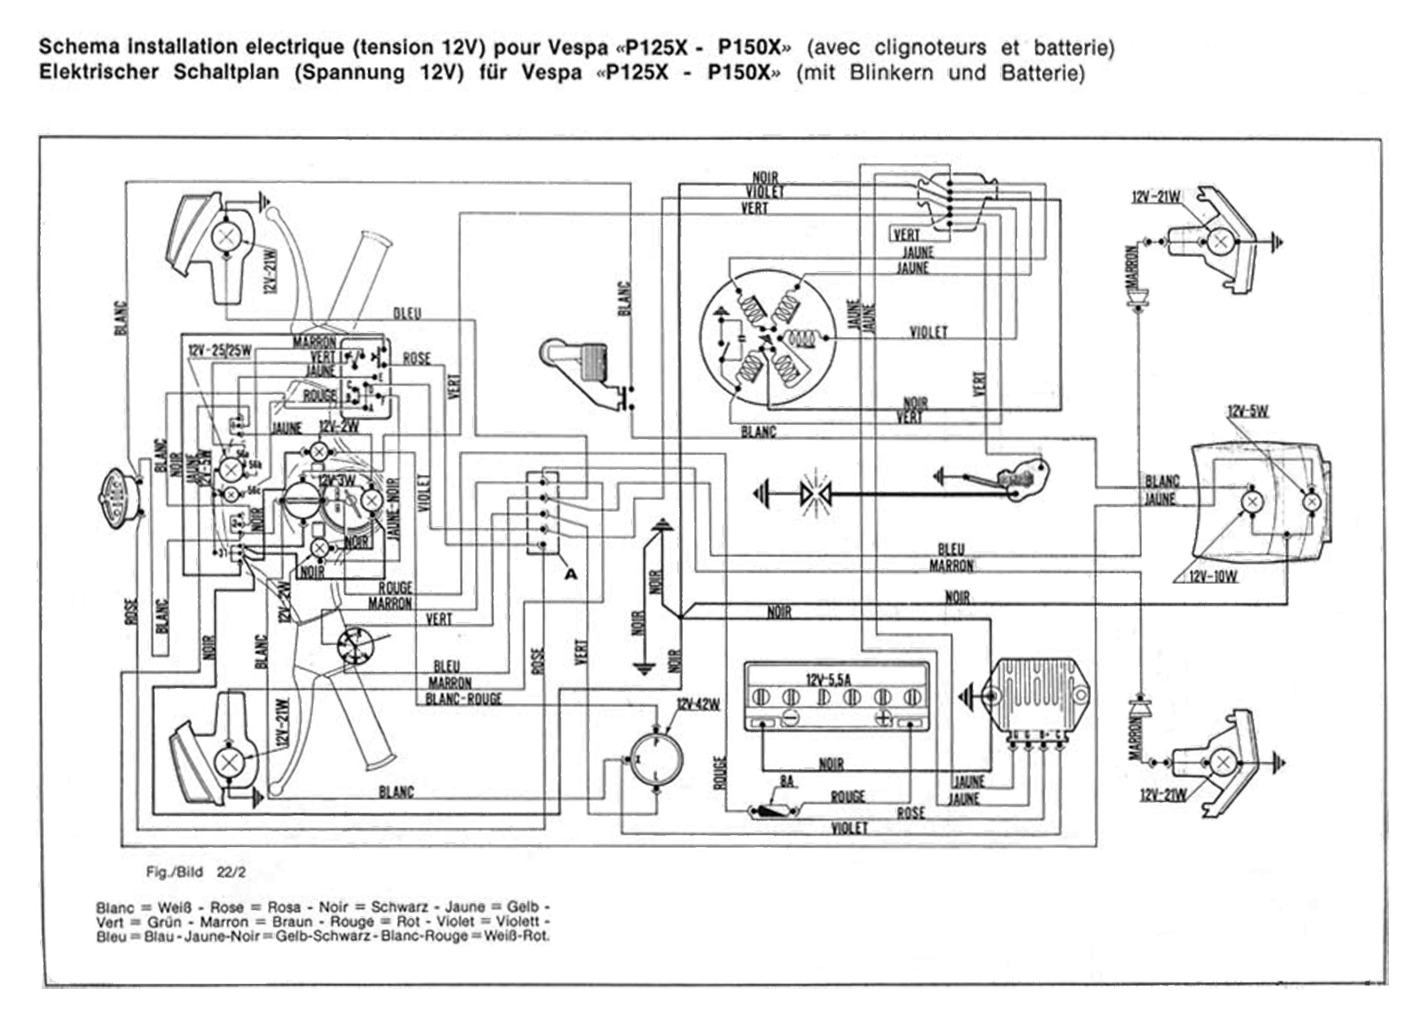 px125 150_12v_mit_blinker_und_batterie wiring diagrams wiring diagrams vespa px 150 wiring diagram at bakdesigns.co